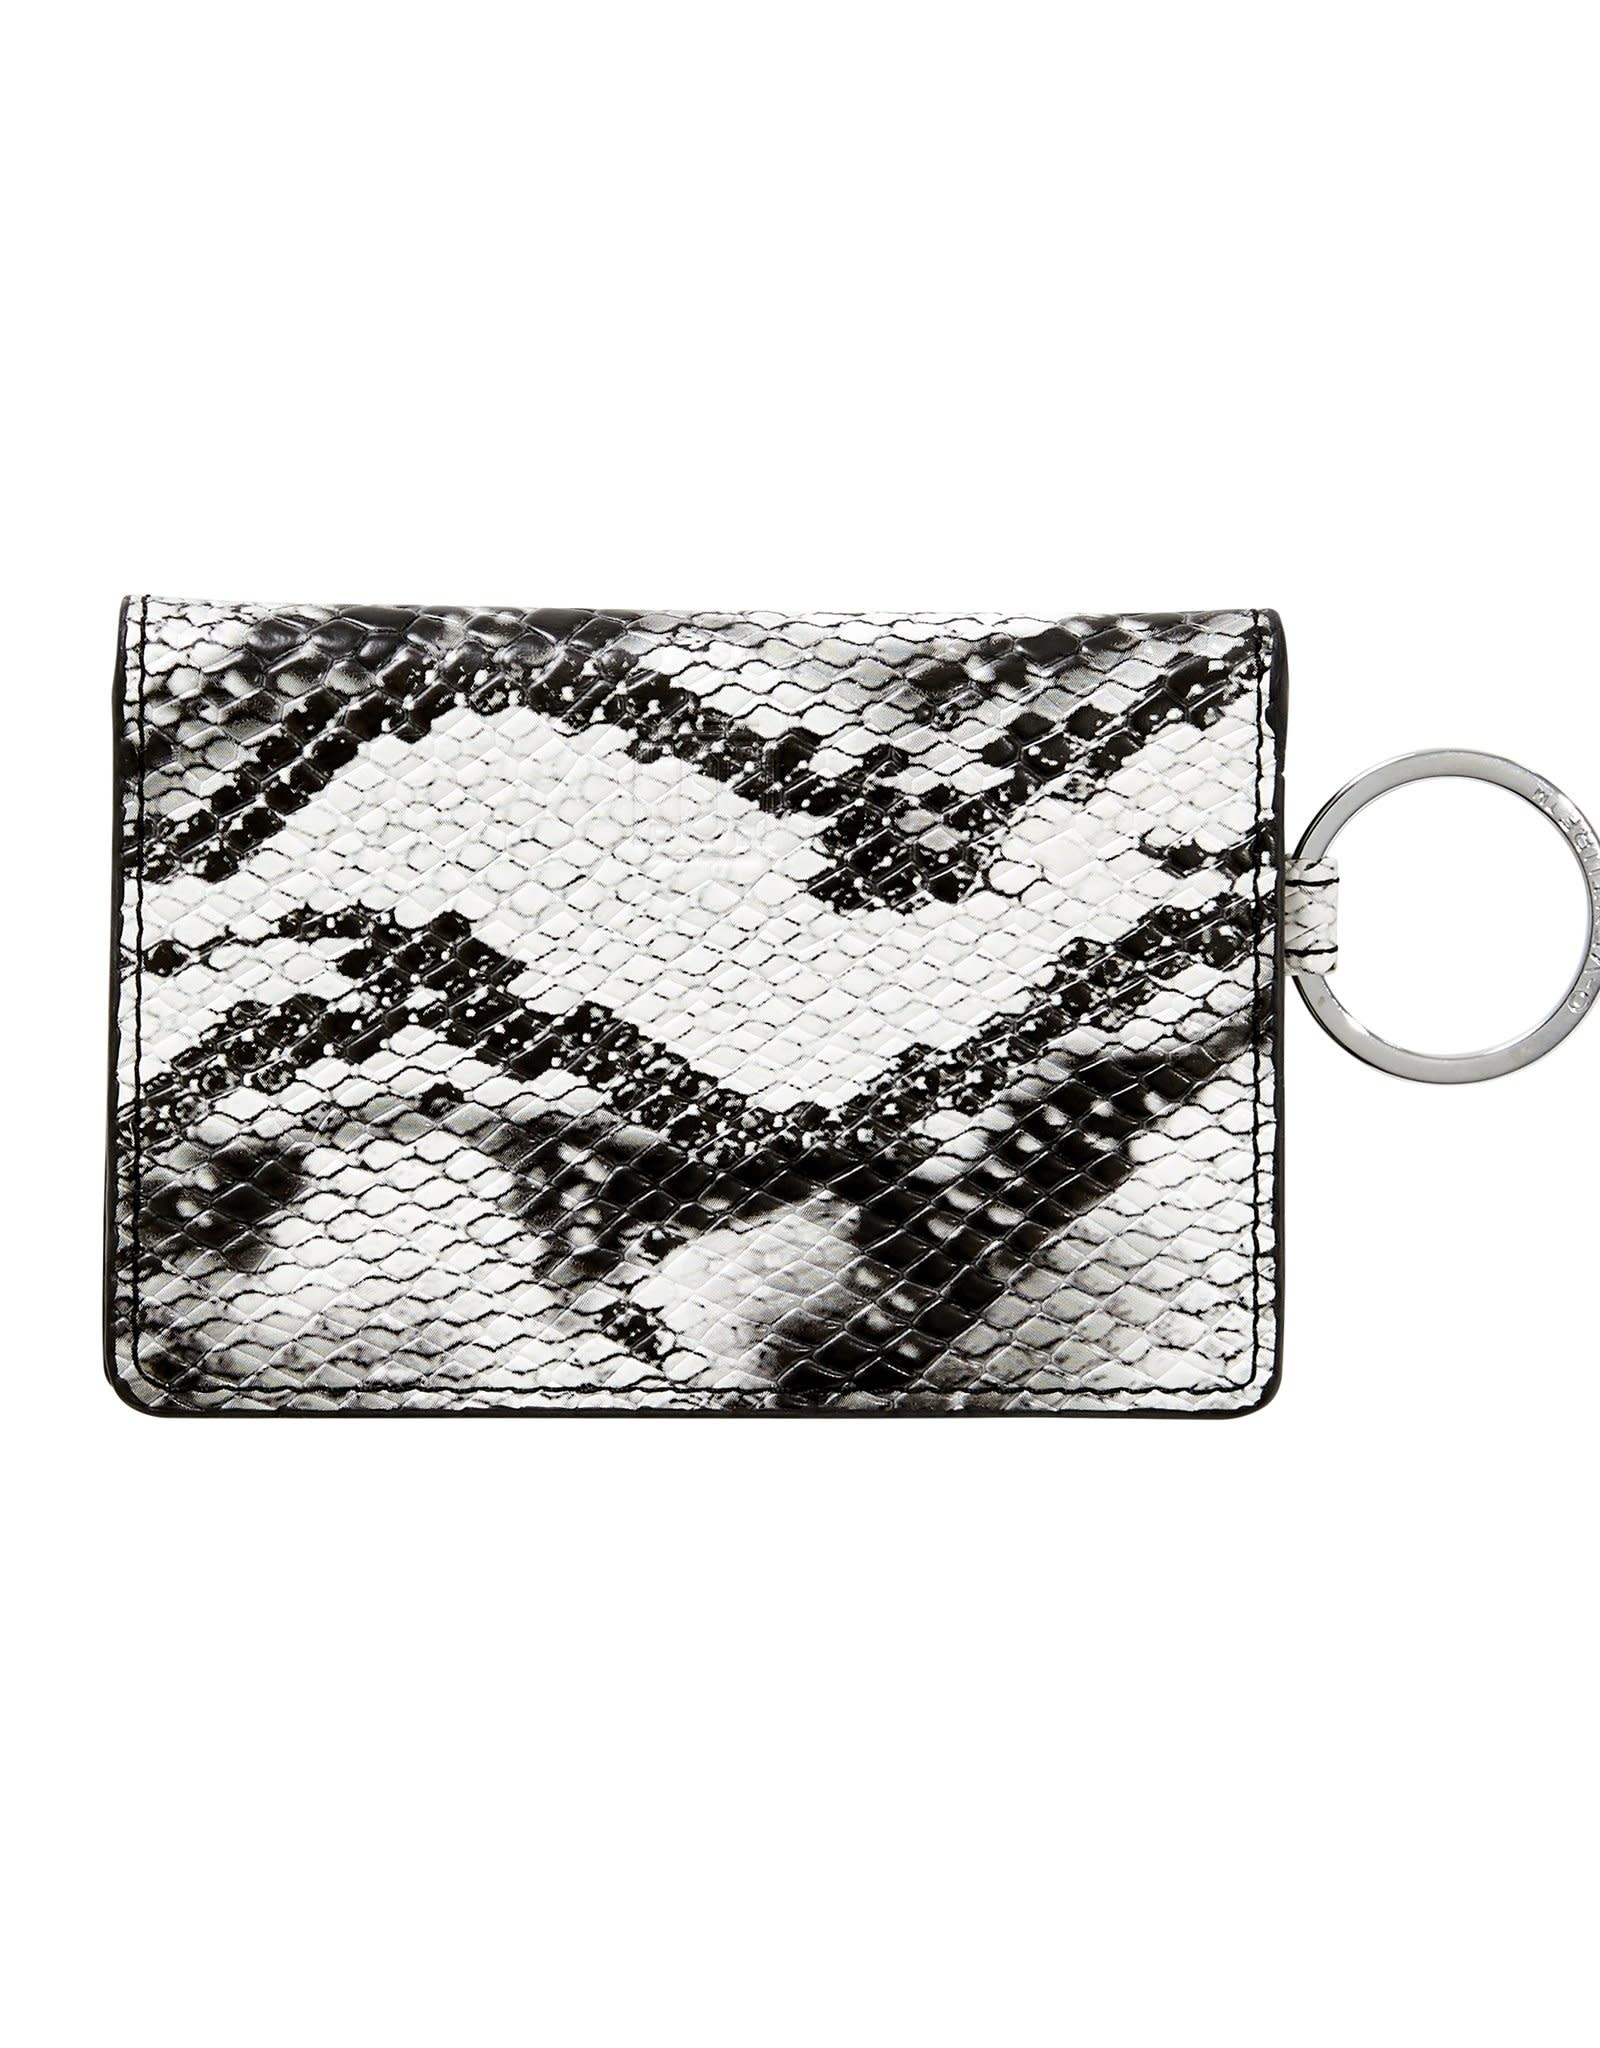 O Ventures Ossential Leather ID Case Tuxedo Snake Skin